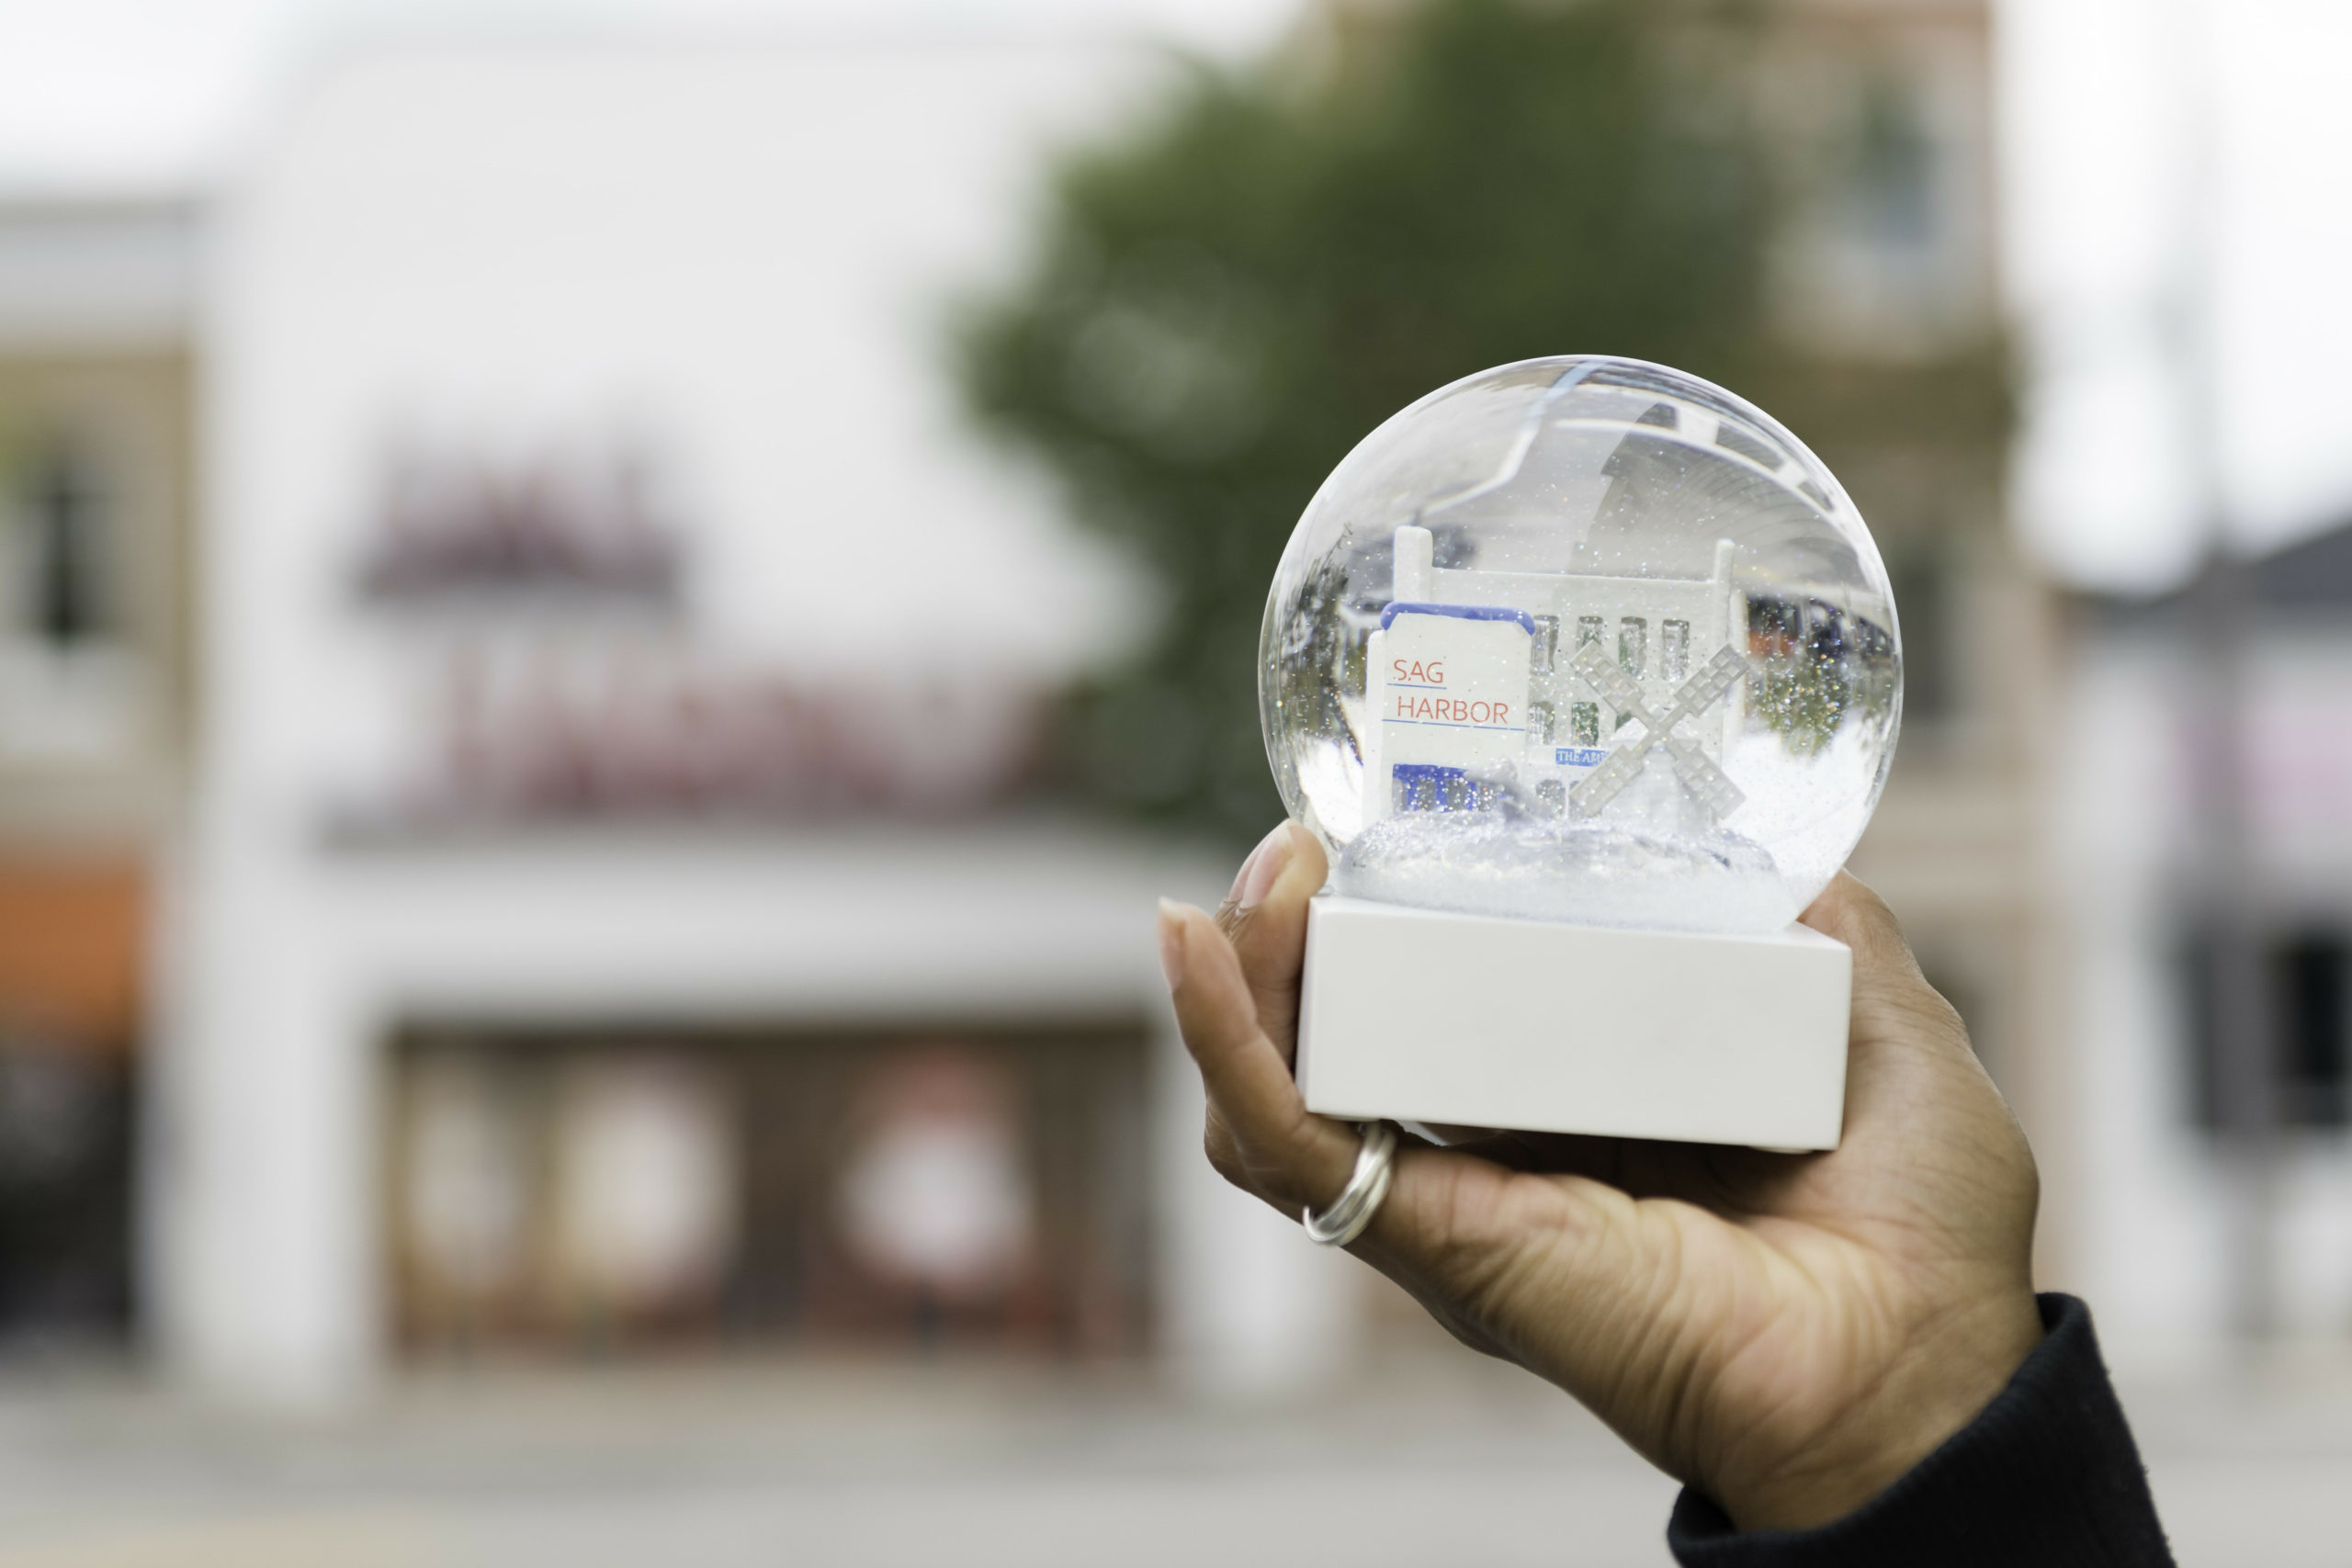 near.main will sell this commemorative snowglobe this holiday season.